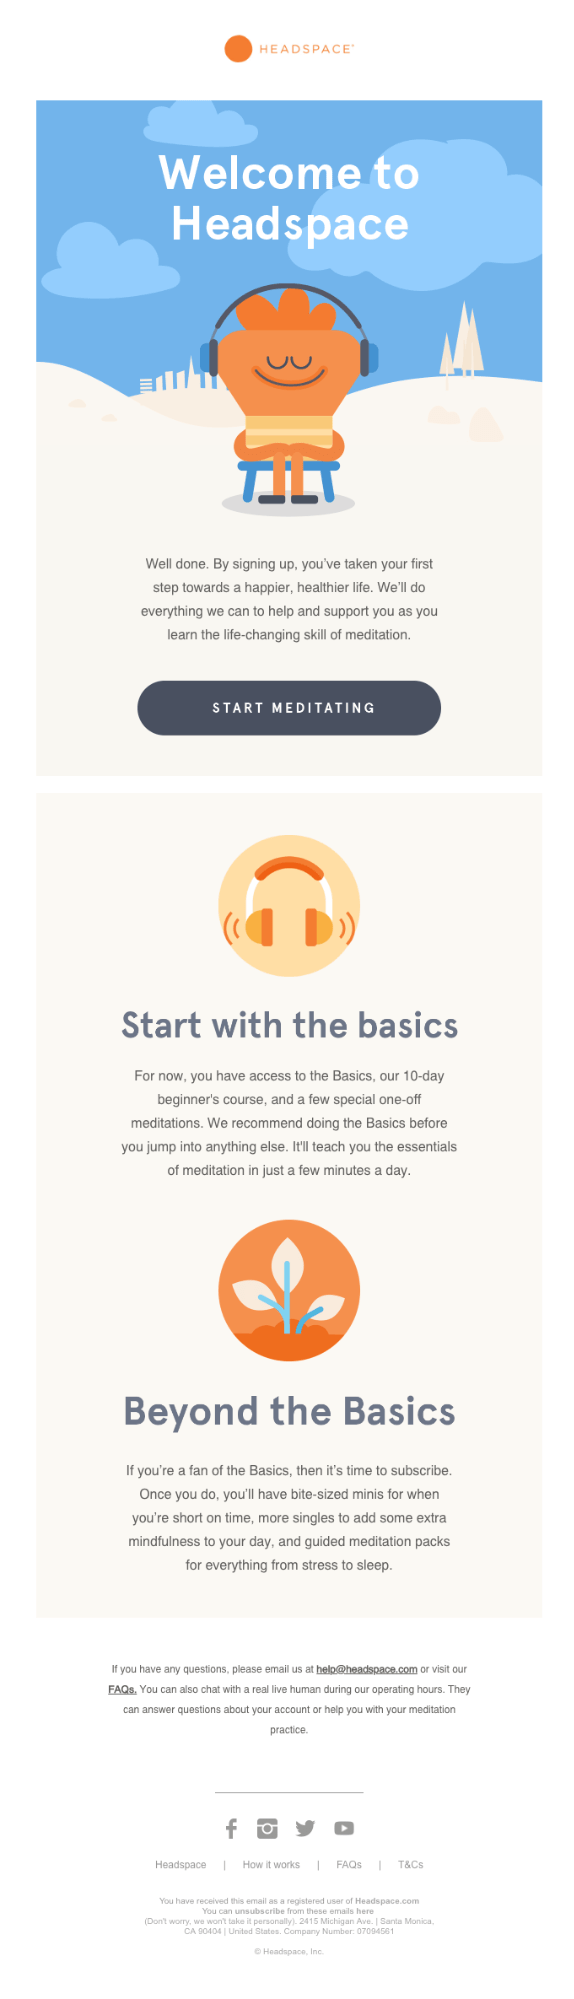 Headspace keeps things simple with one very prominent CTA that's ready to be clicked.